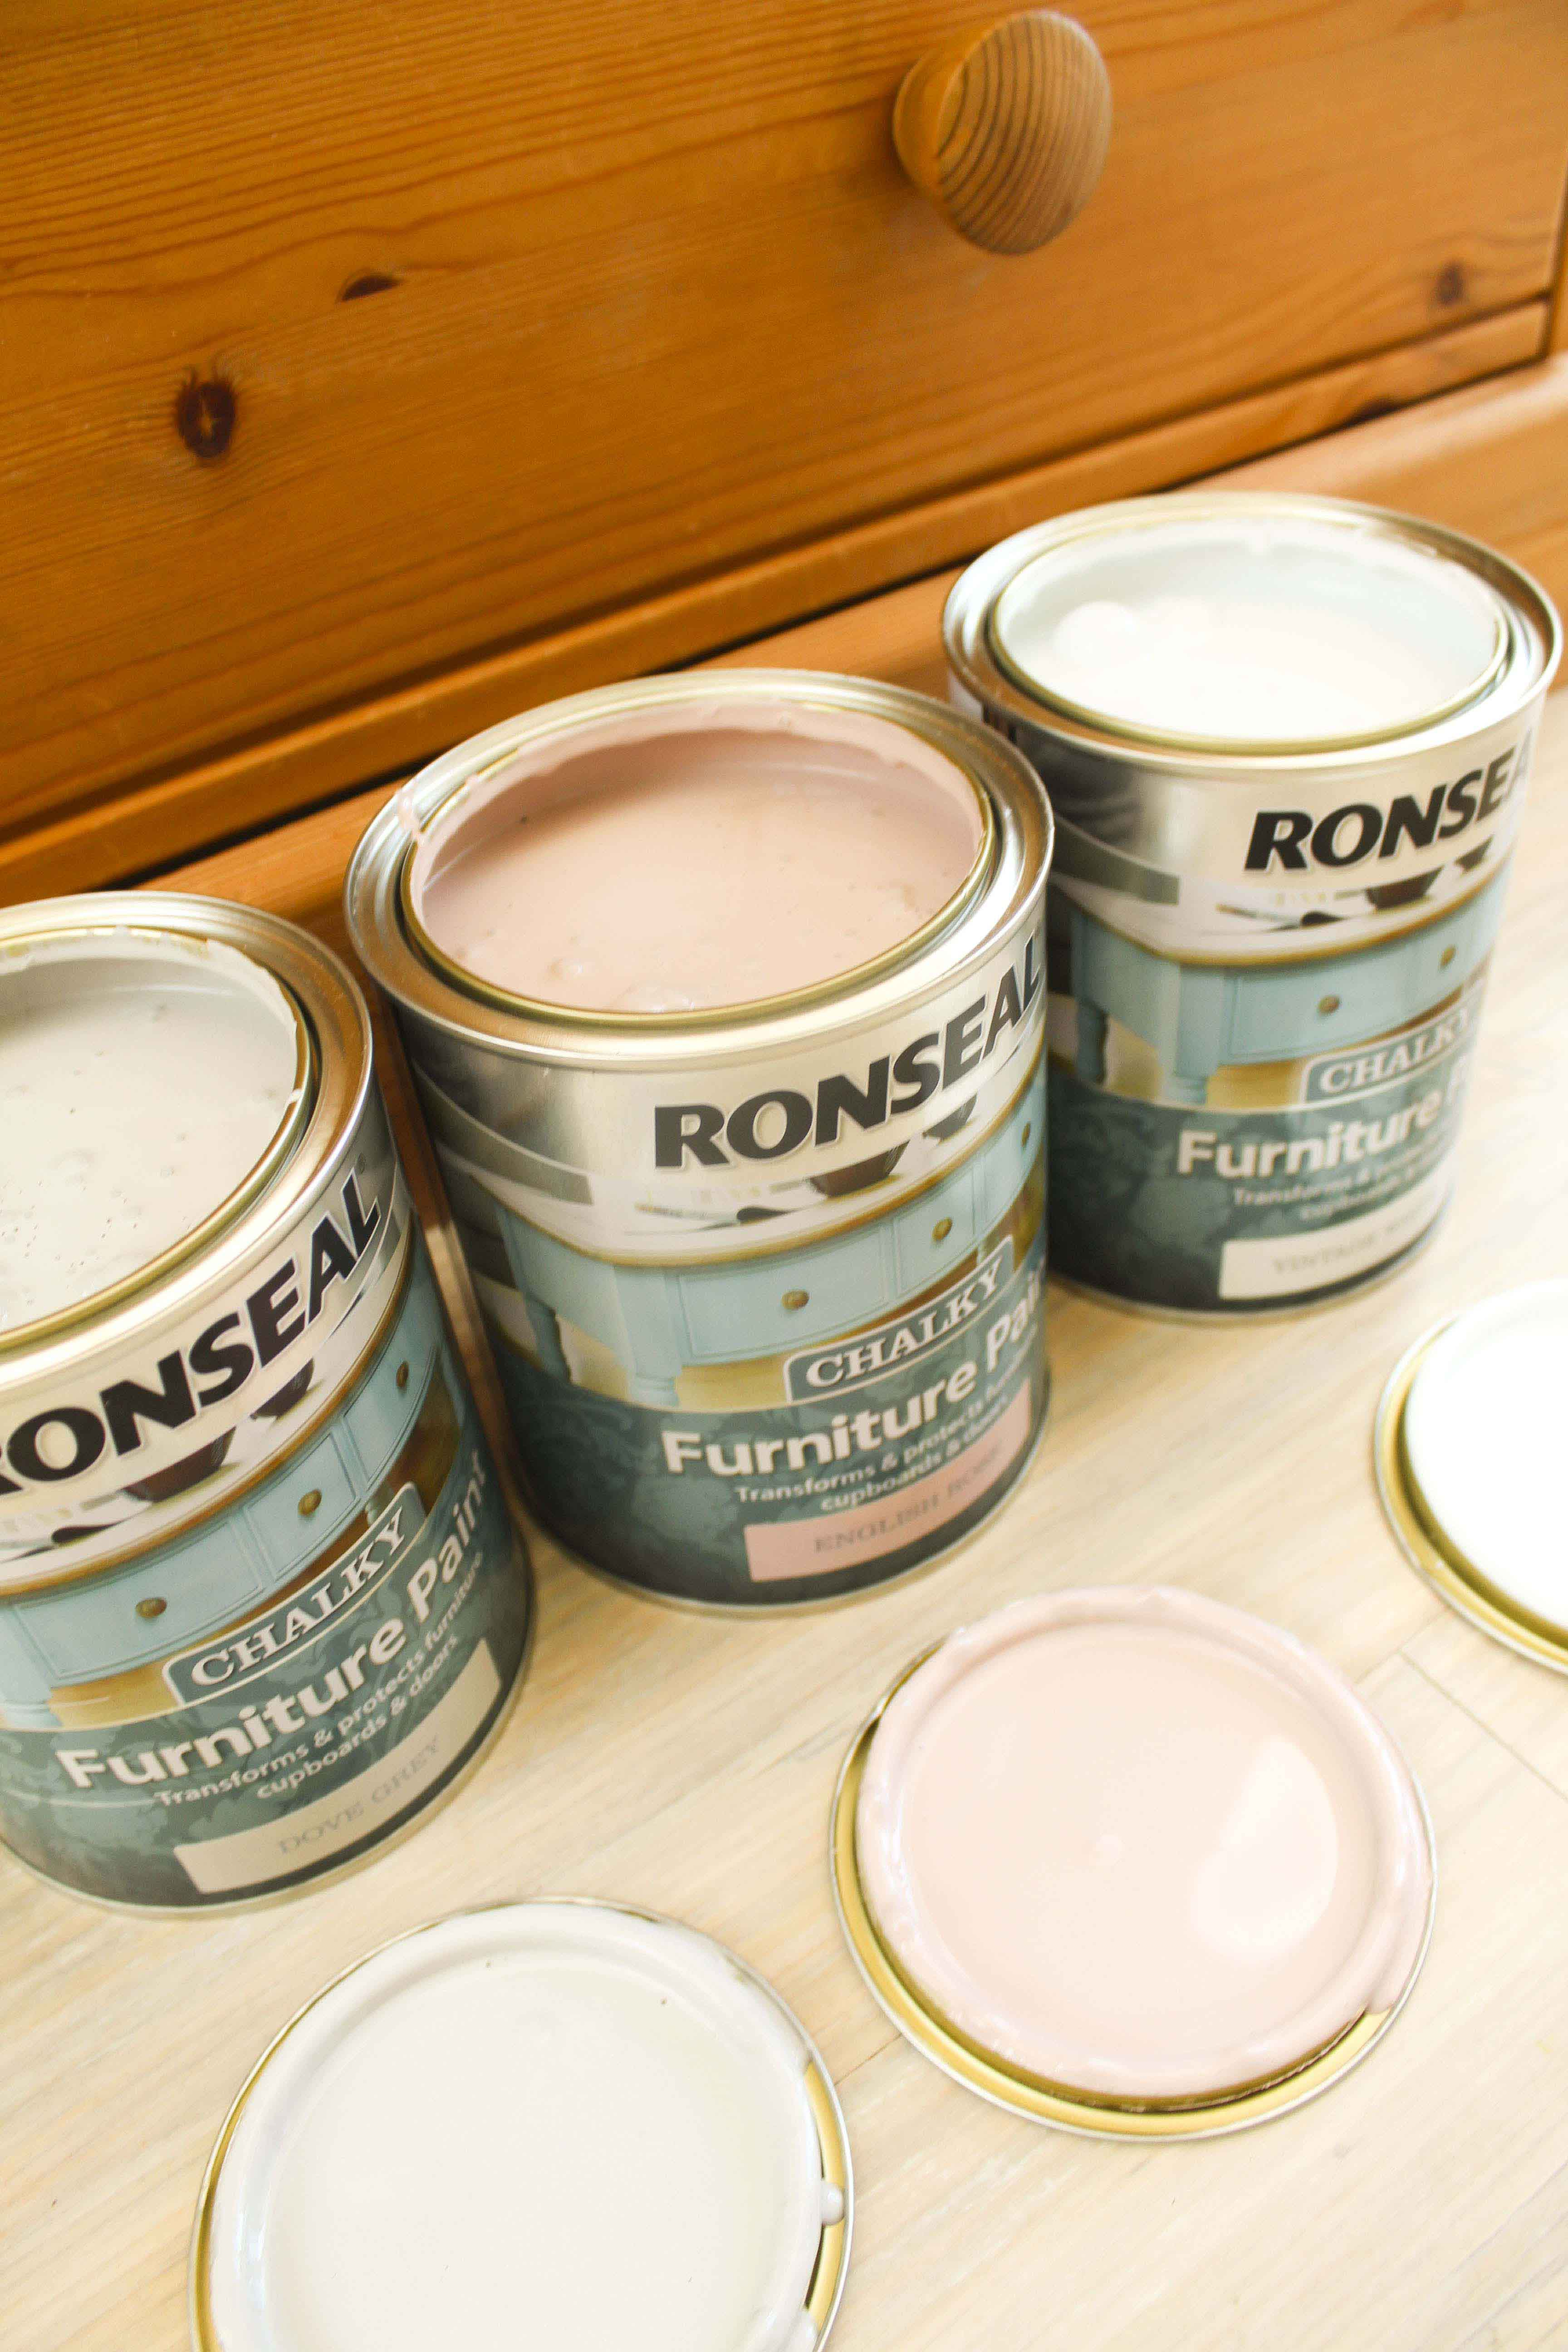 Ronseal chalky furniture paint ronseal - Ronseal Chalky Furniture Paint Ronseal 7